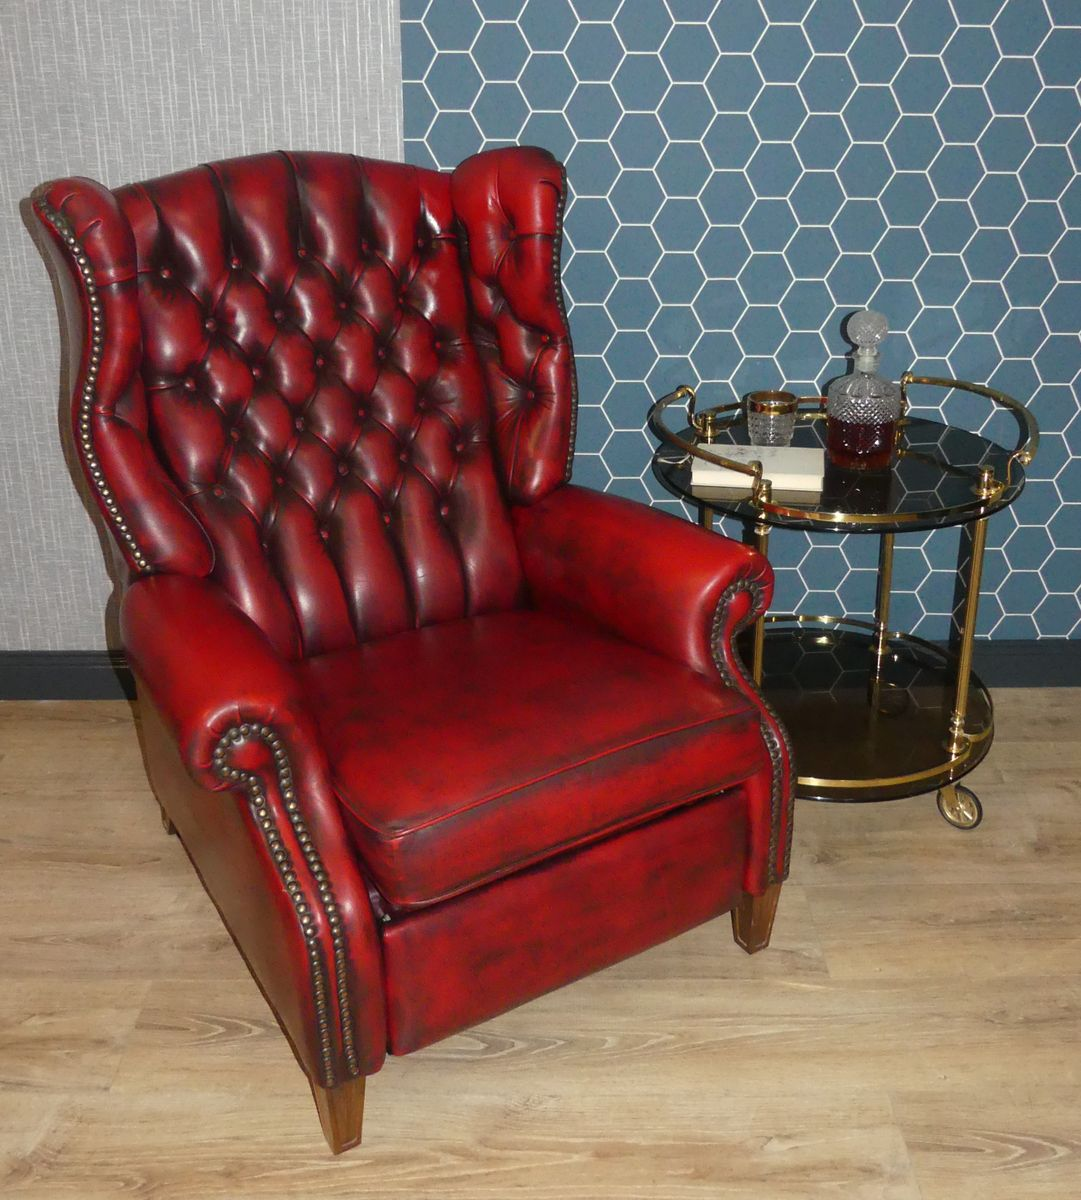 Fauteuils Chesterfield Rouge Fauteuil Inclinable De Style Chesterfield En Cuir Rouge